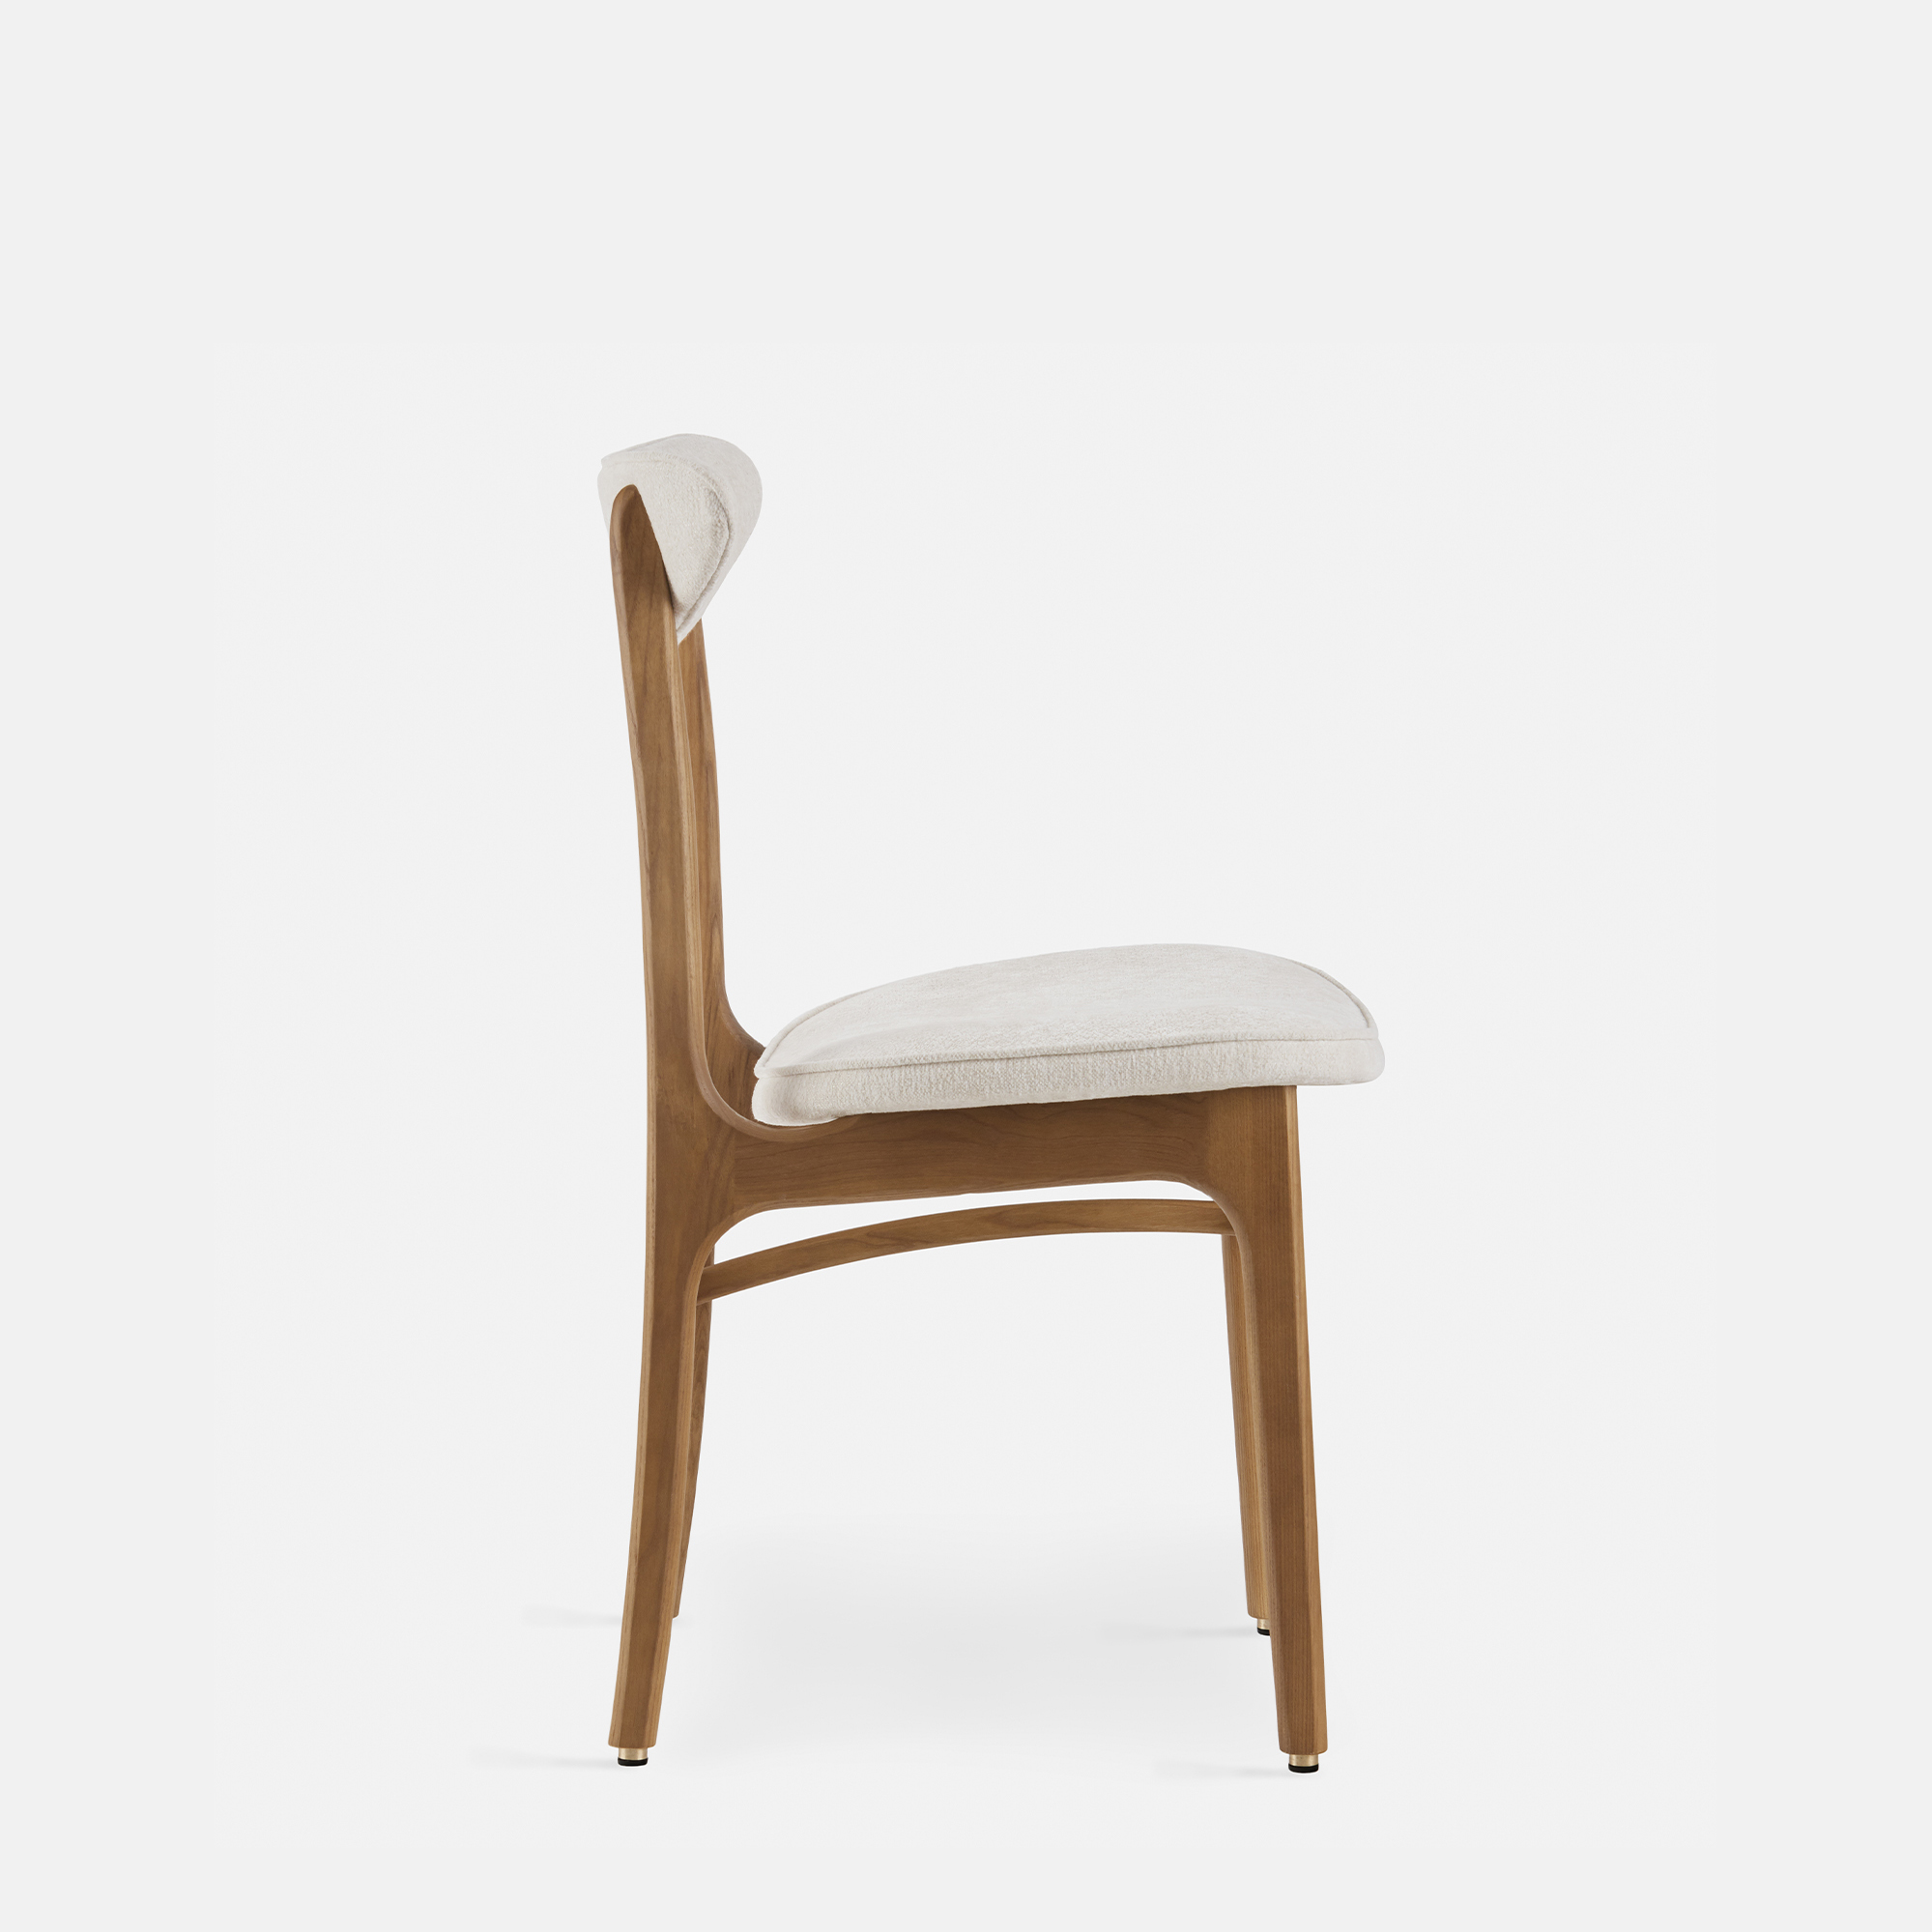 366-Concept-200-190-Chair-W02-Marble-White-side